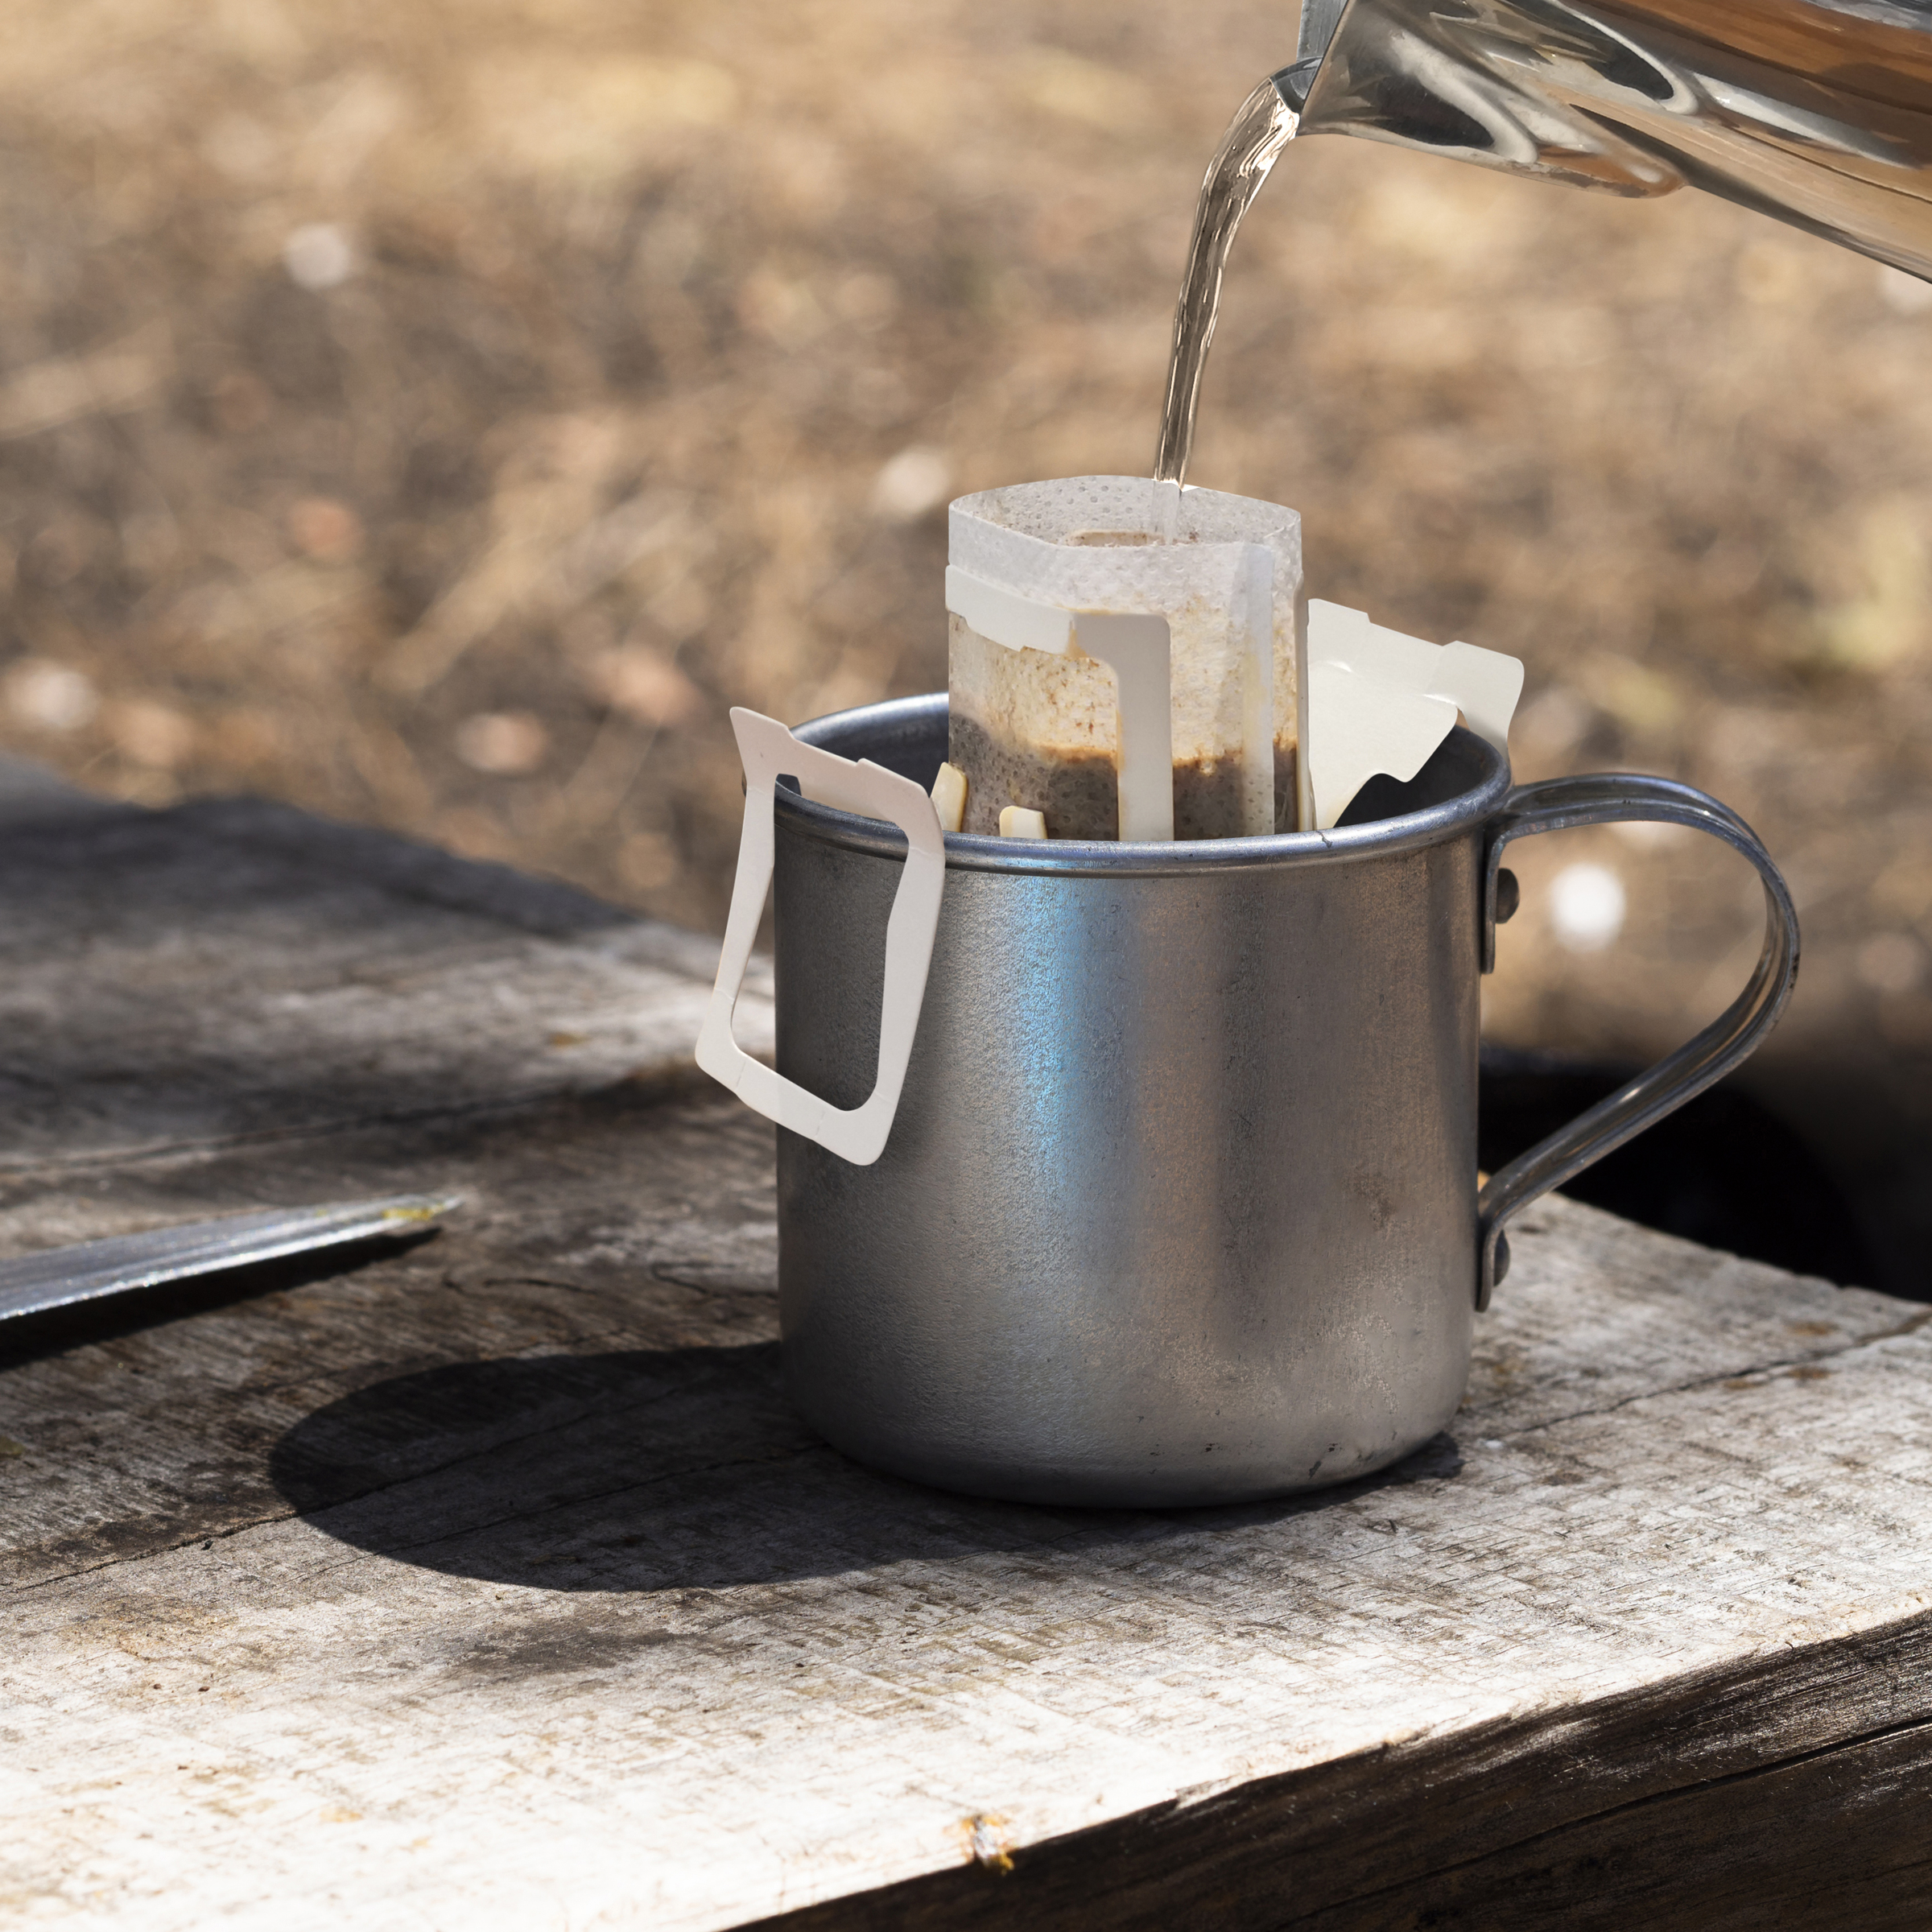 Vintage Metal Mug Knife Shabby Wooden Table 02.jpg